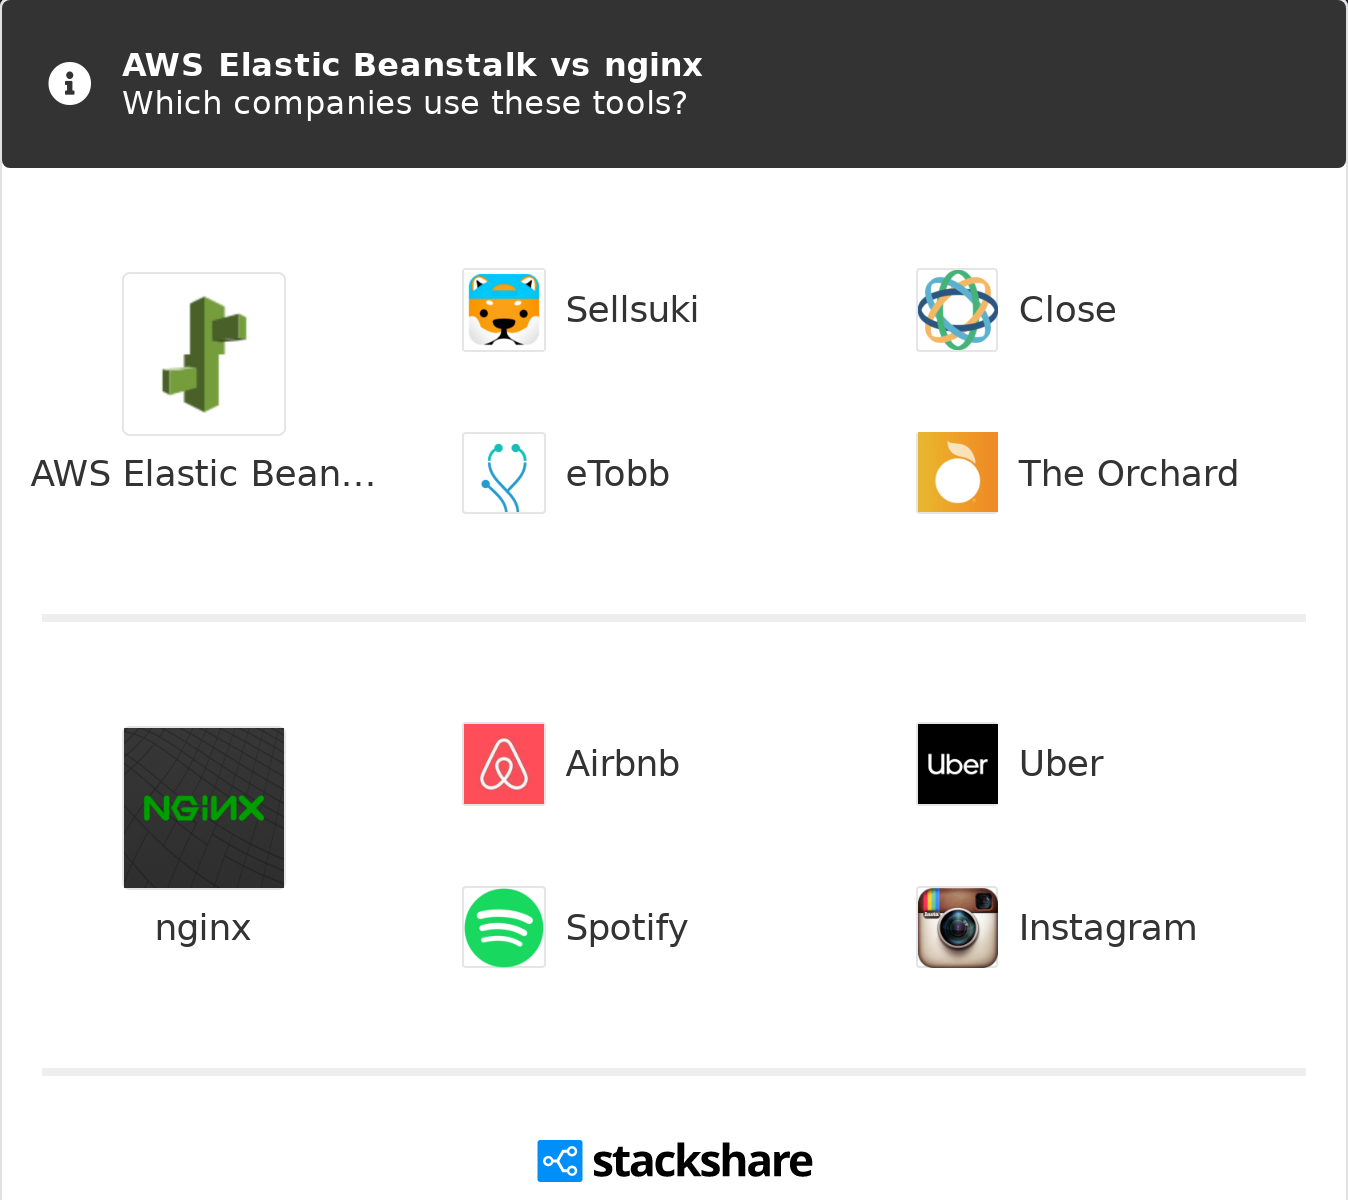 AWS Elastic Beanstalk vs nginx | What are the differences?